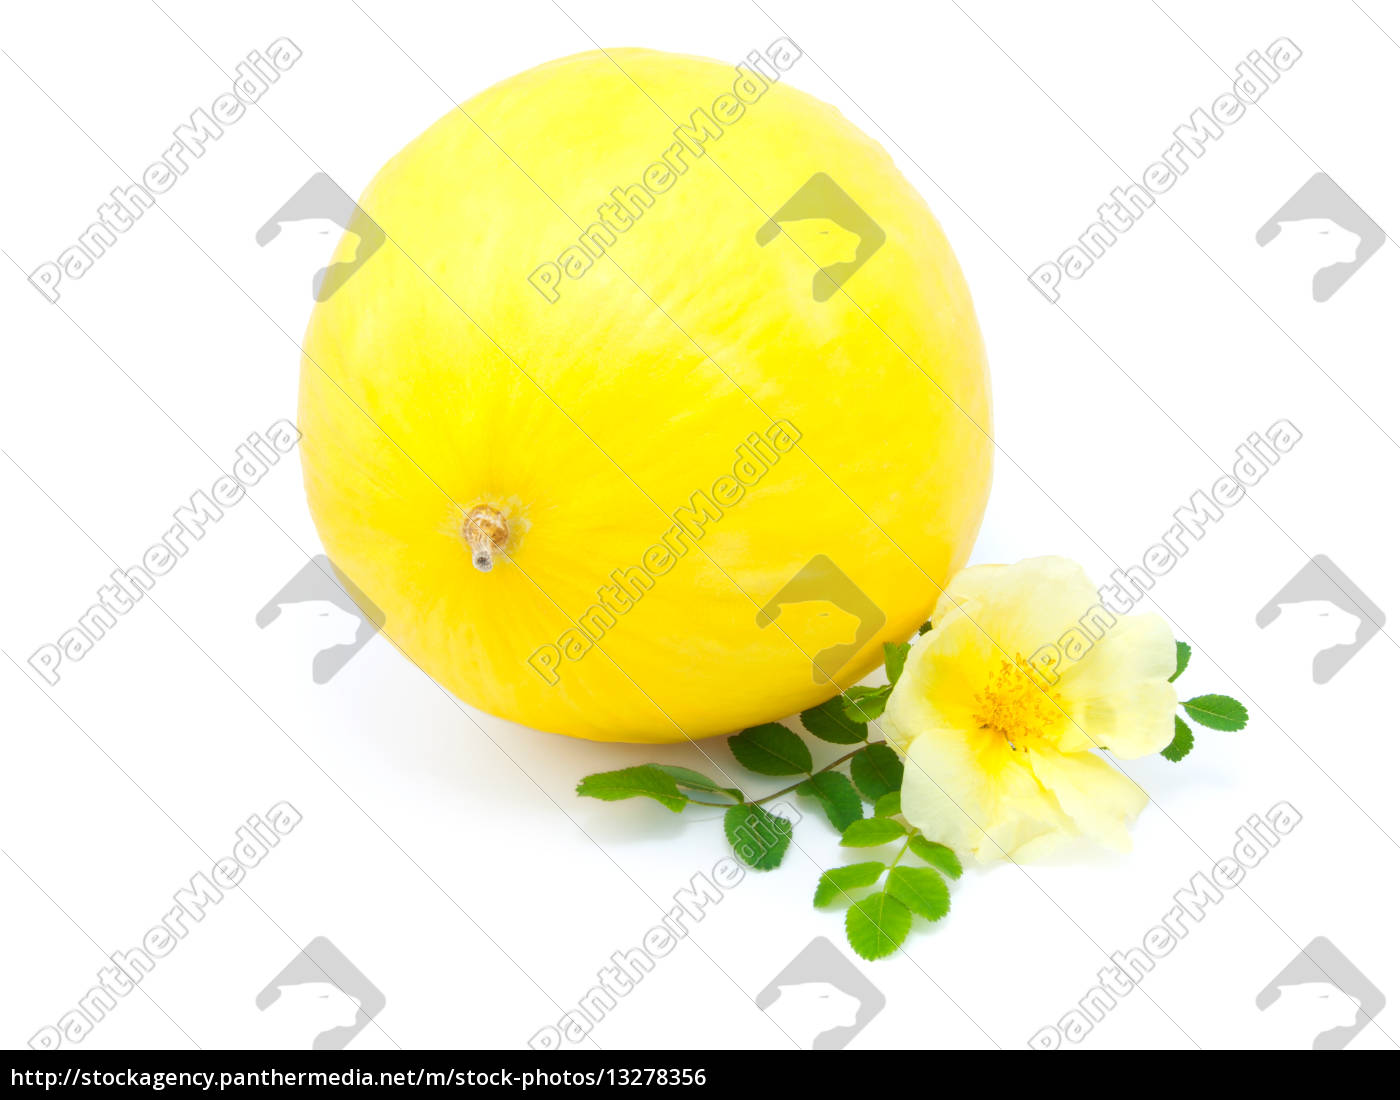 Yellow Melon With Flower Isolated On White Background Lizenzfreies